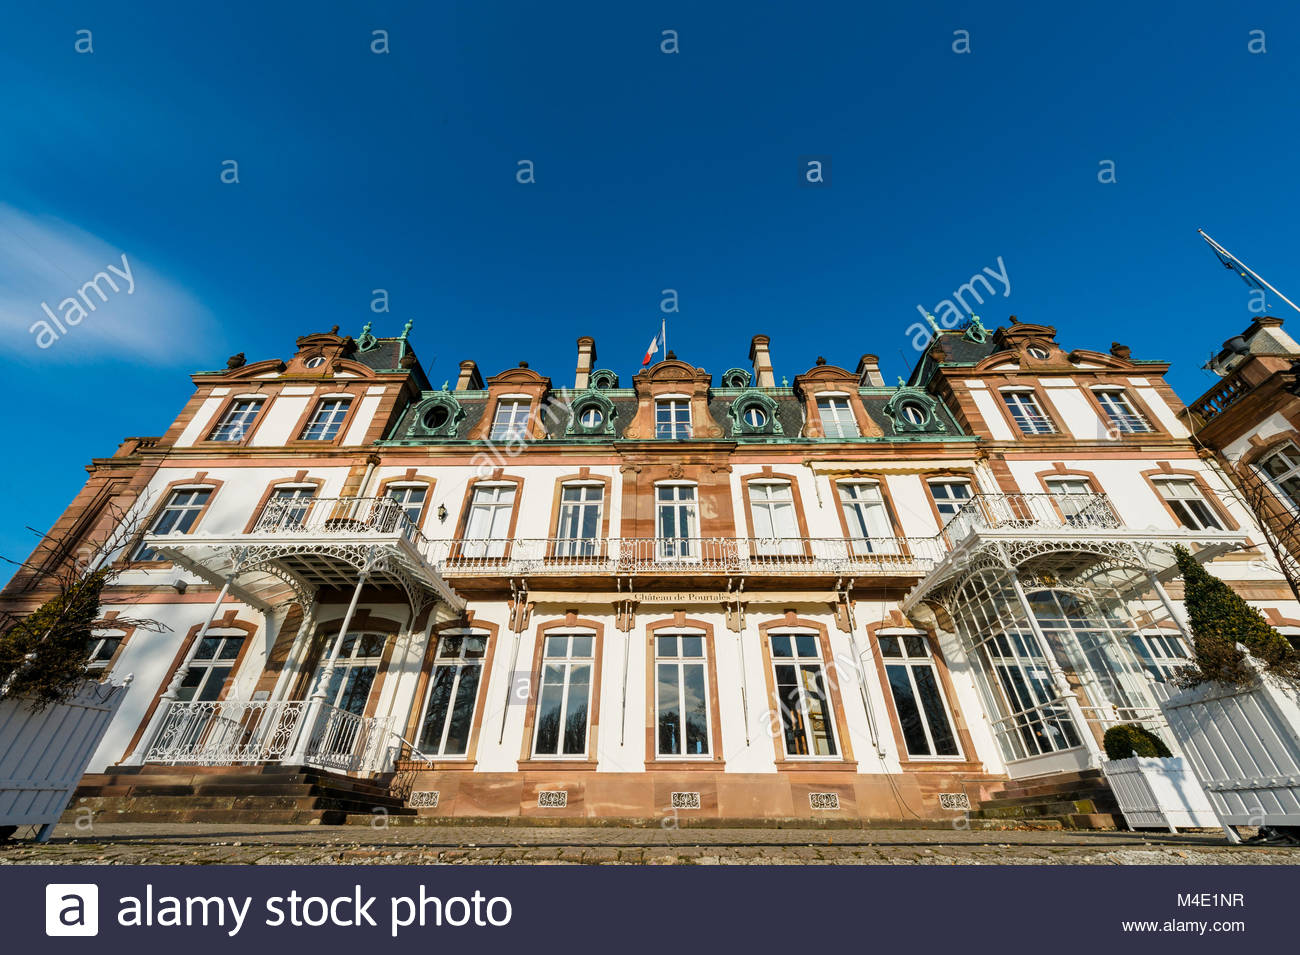 View from below of Chateau de Pourtales wide view - Stock Image